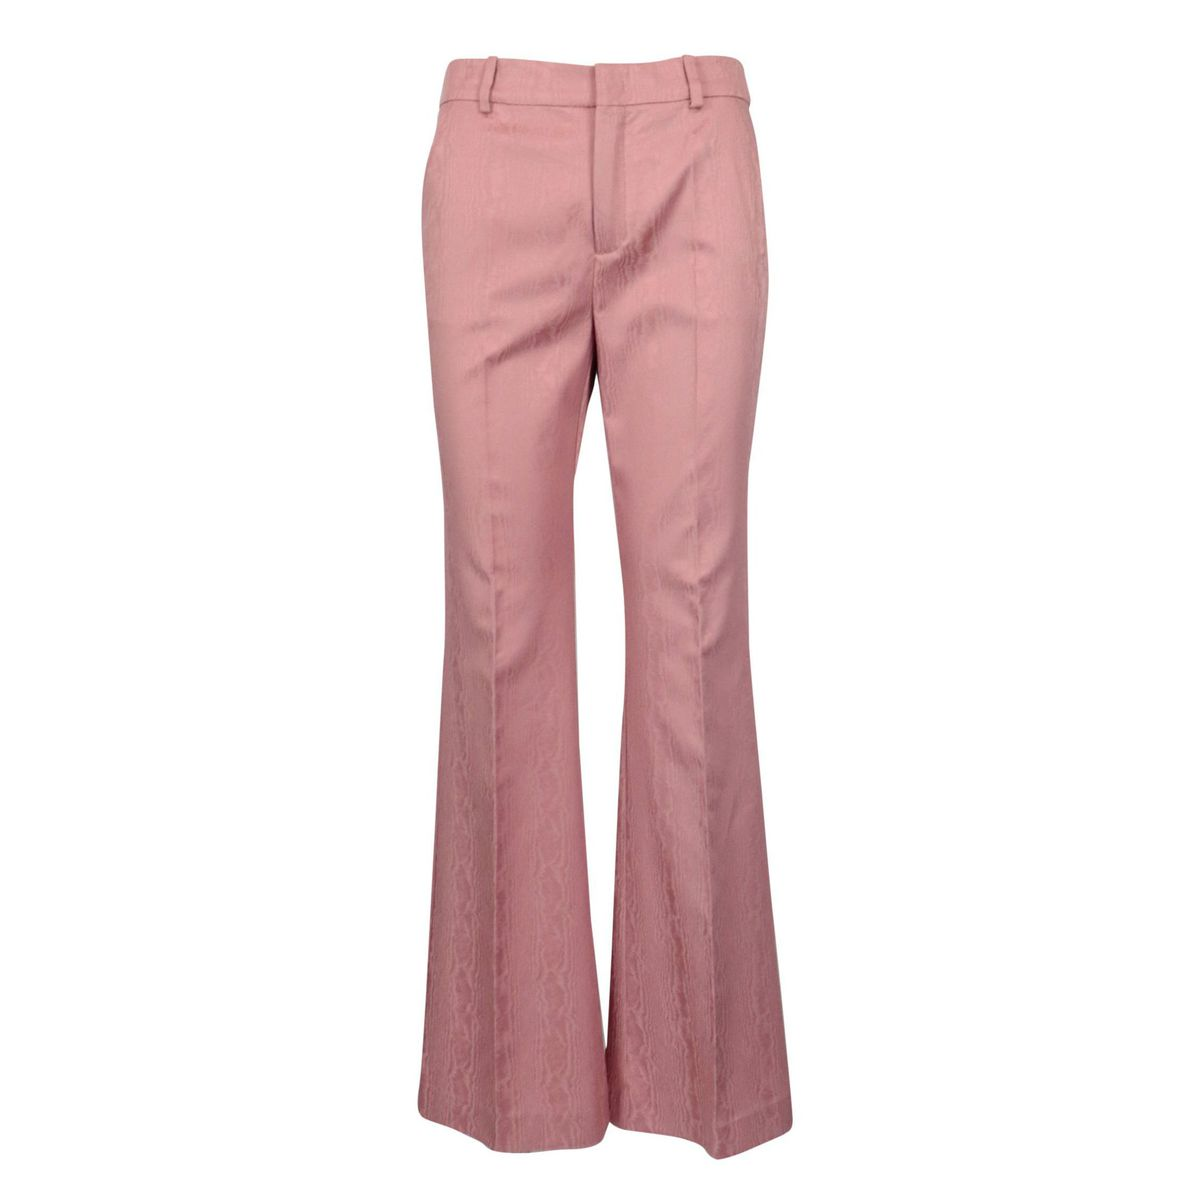 Moirè trousers with wide bottom in stretch cotton Antique pink Maliparmi